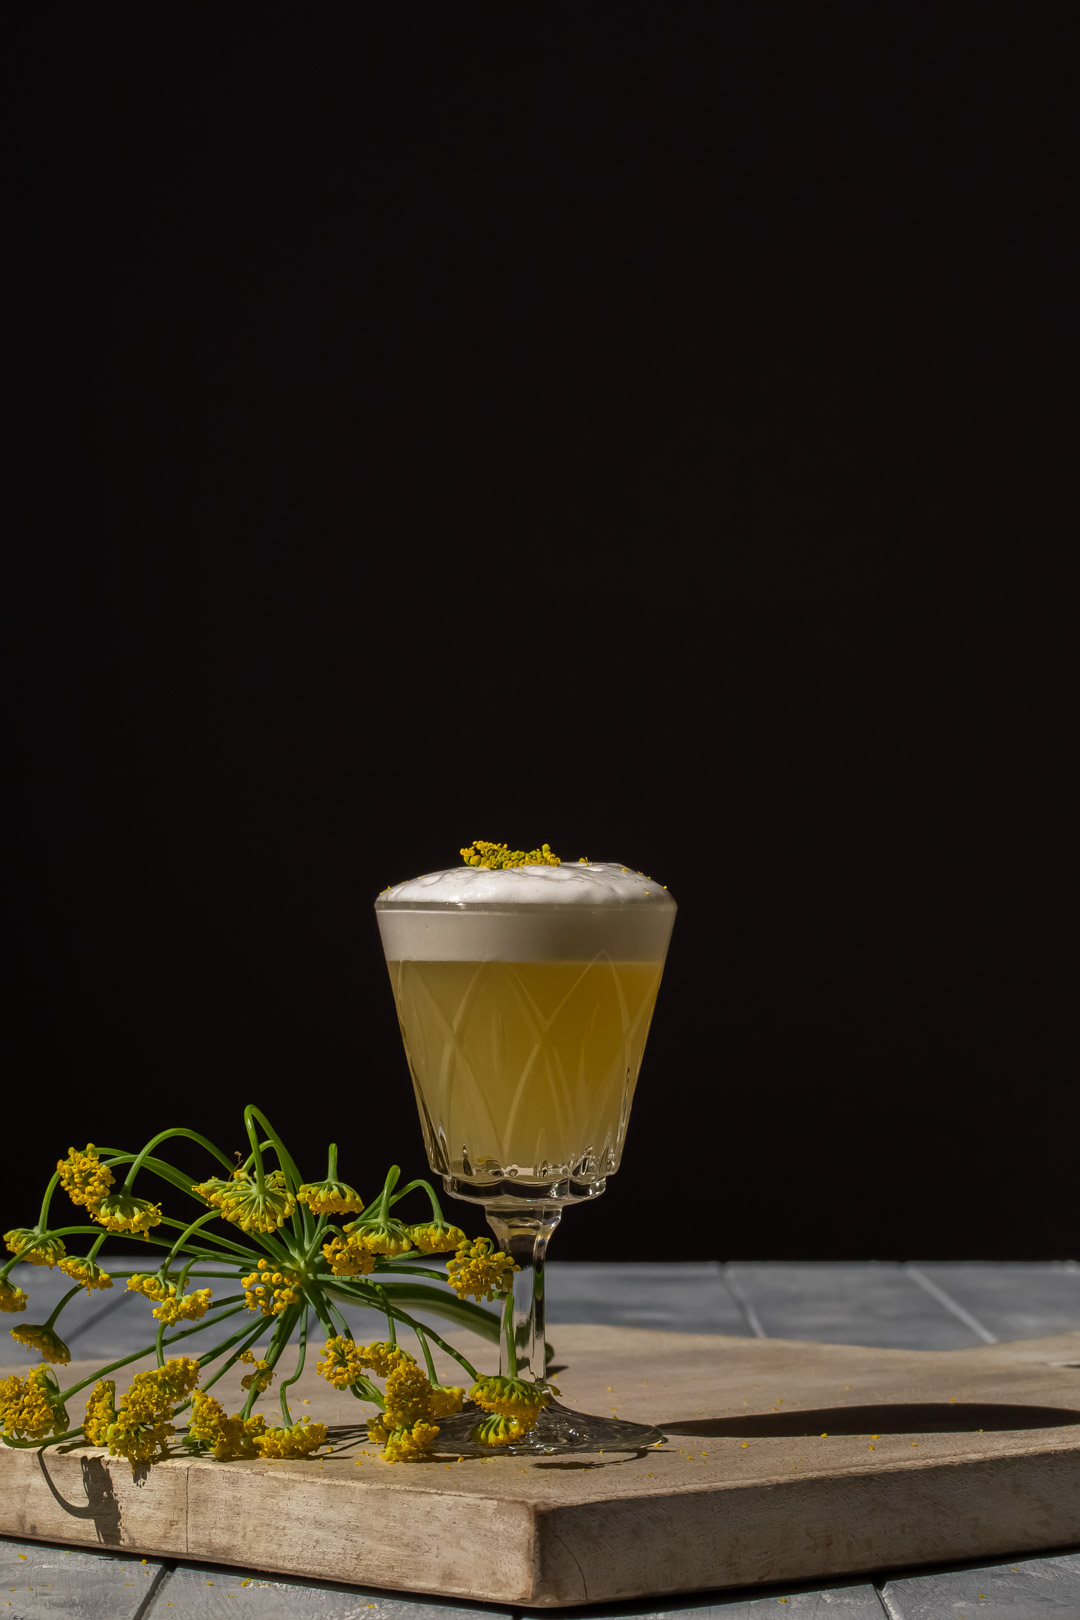 fennel flower silver sour with fennel flower garnish and fennel umbrel to left